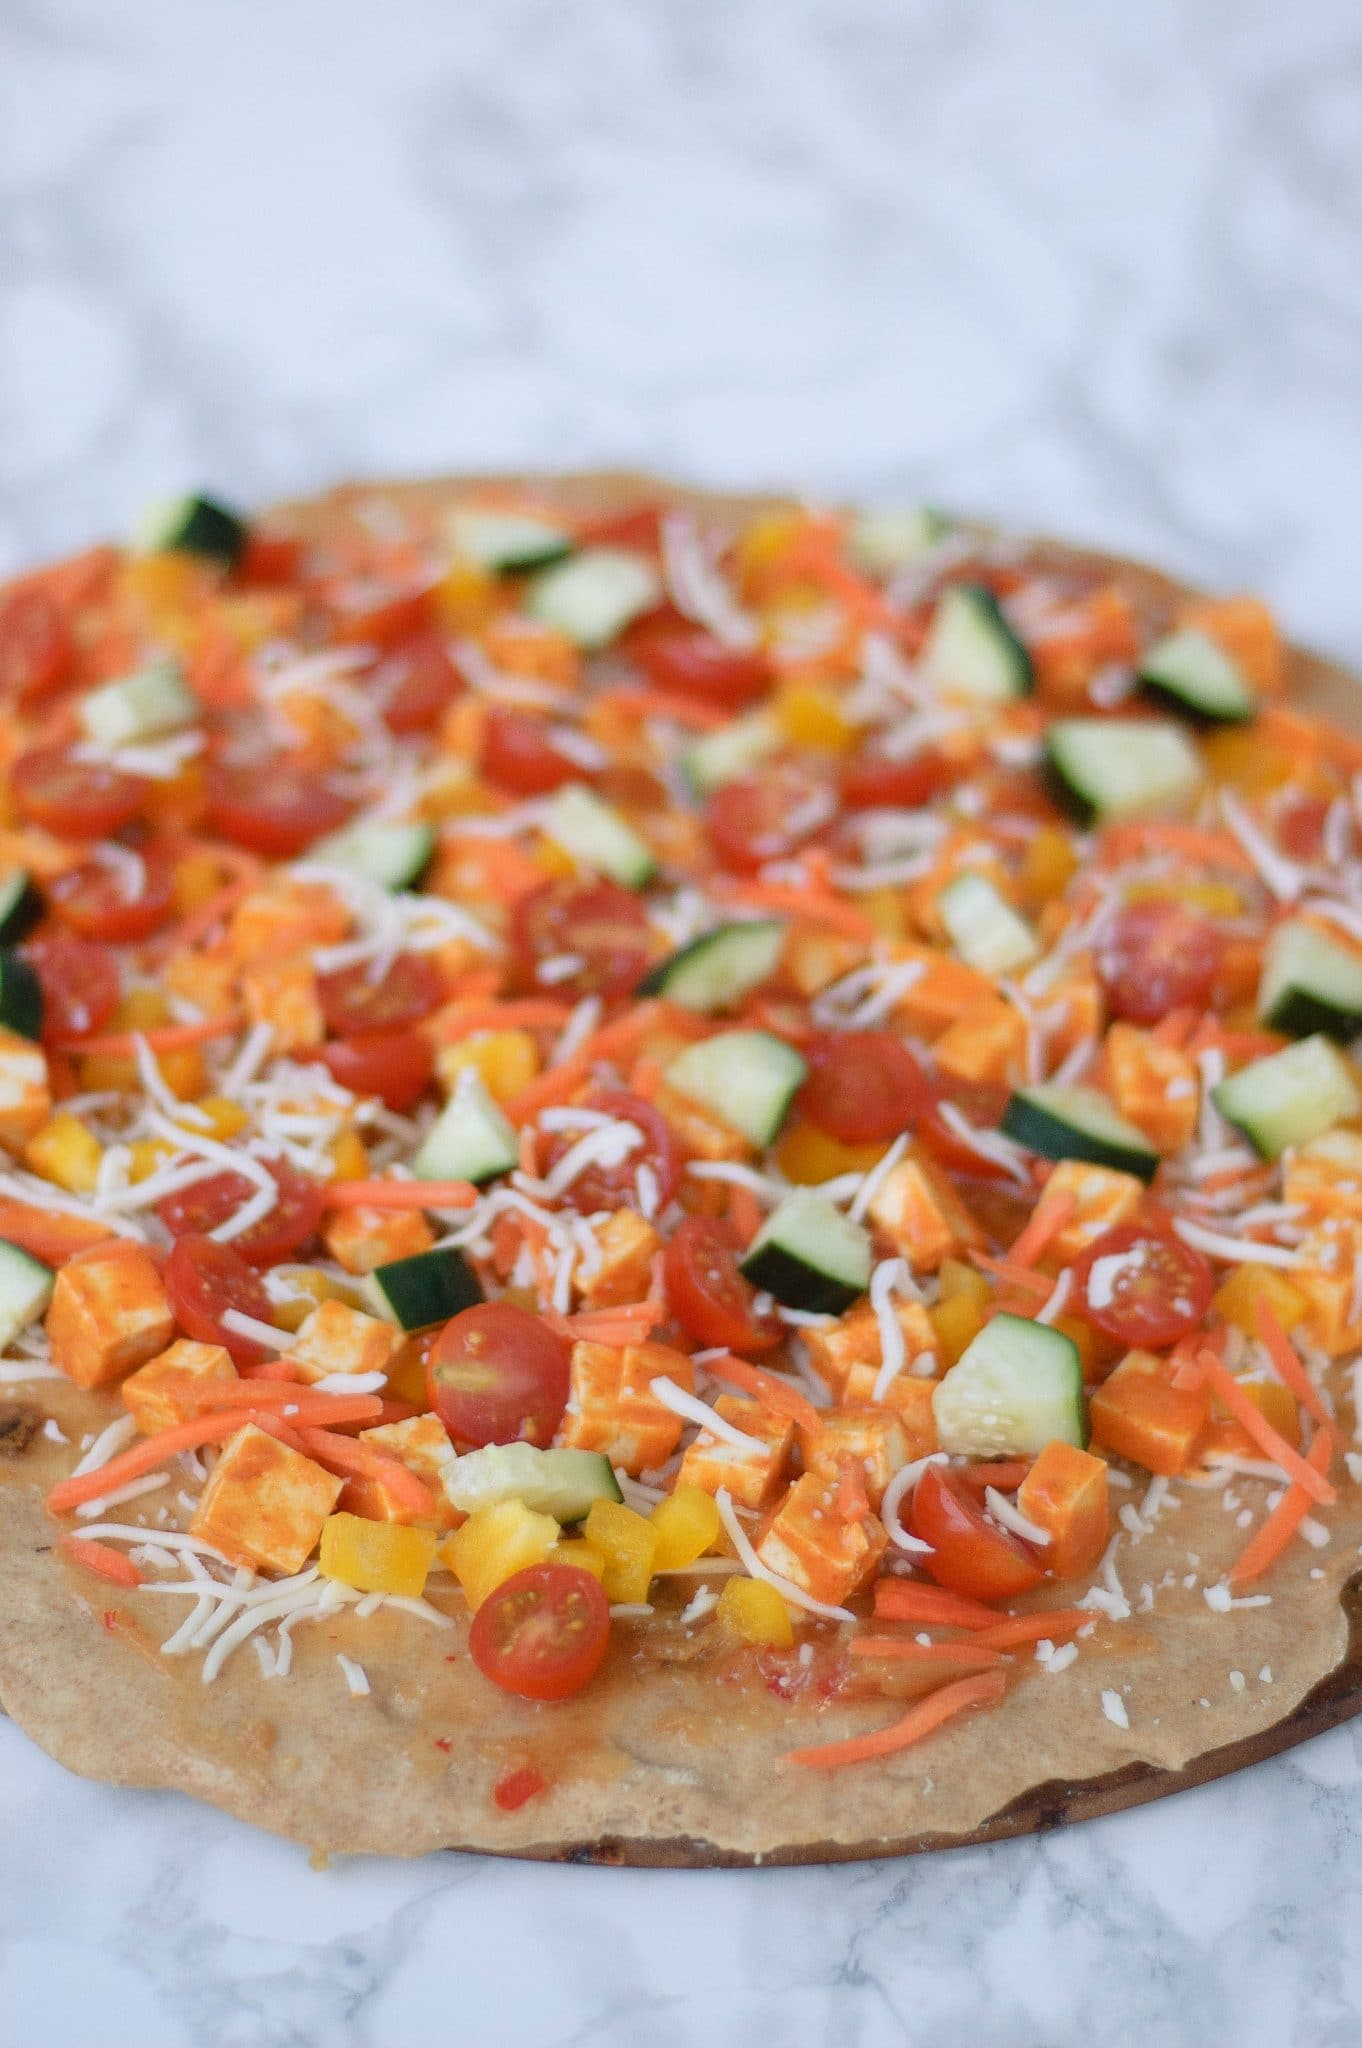 Get this recipe for a sweet and spicy vegetarian thai curry pizza. Change up the routine and try this pizza instead of ordering out - you won't regret it!